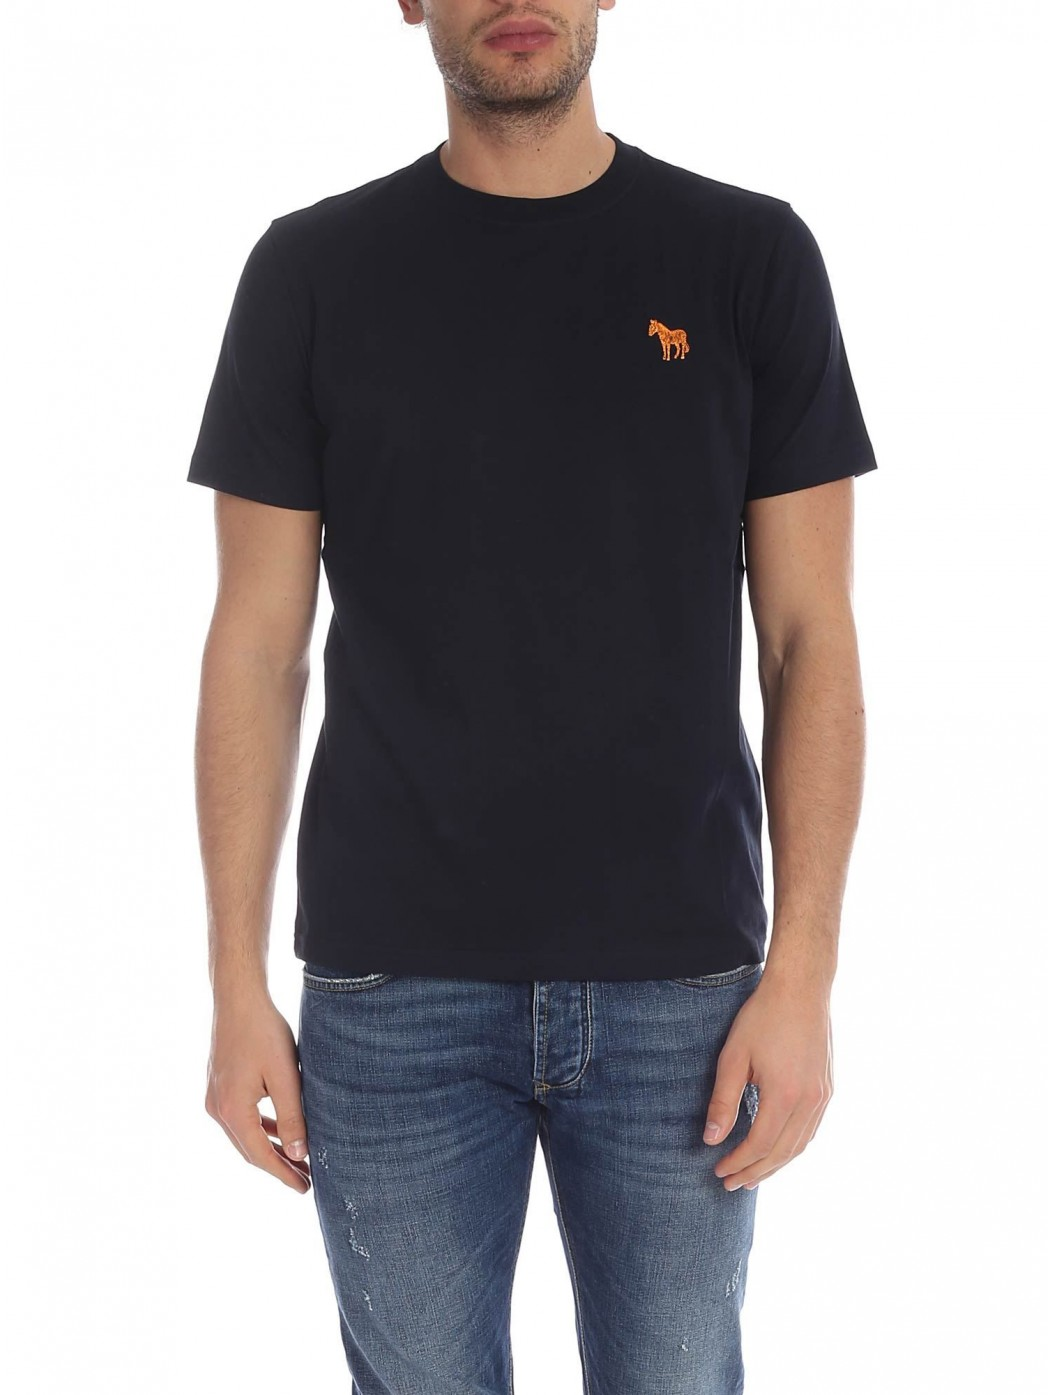 PAUL SMITH M2R 011R 49 T-SHIRT